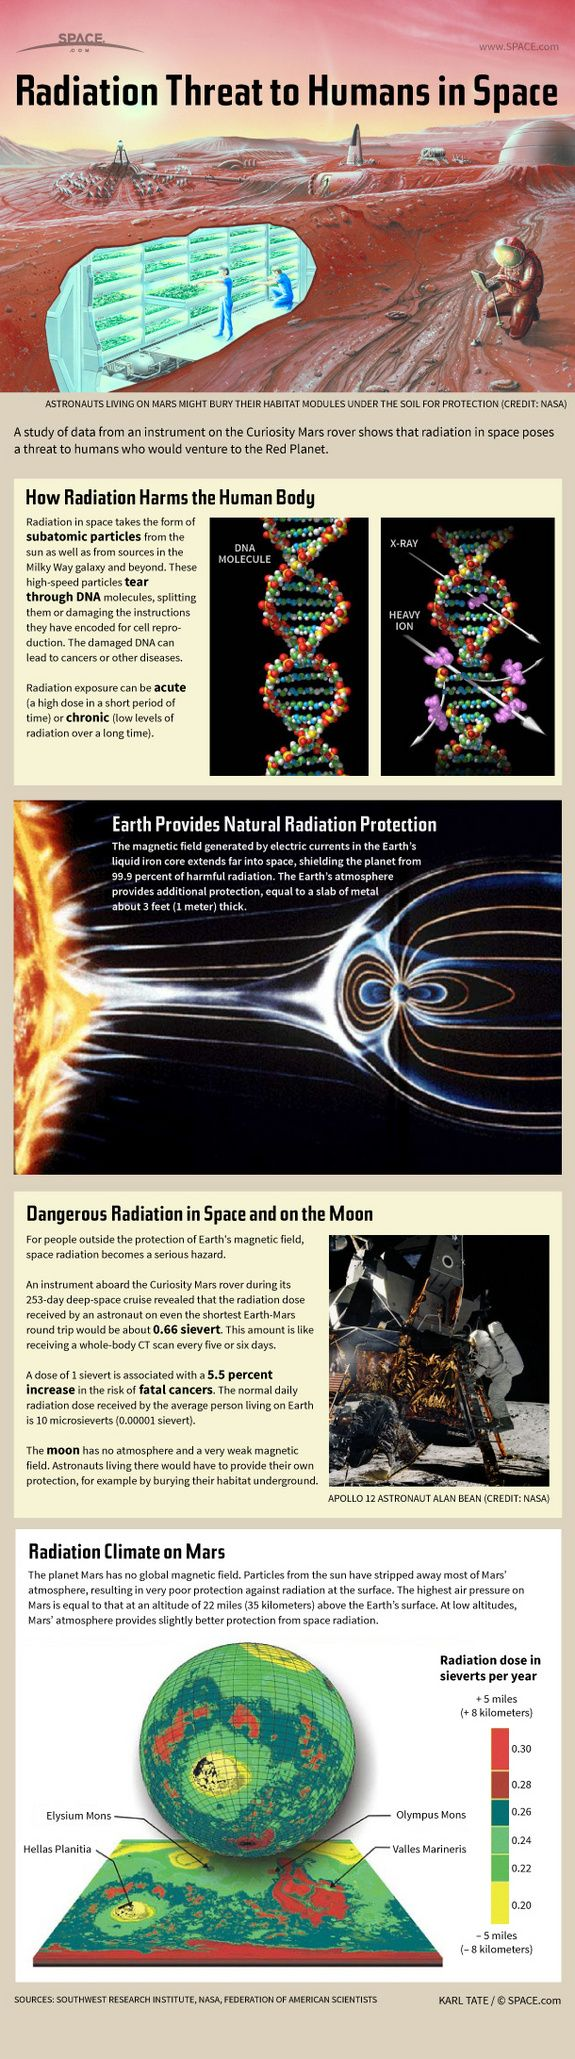 How Radiation in Space Poses a Threat to Human Exploration (Infographic) by Karl Tate, SPACE.com Infographics Artist